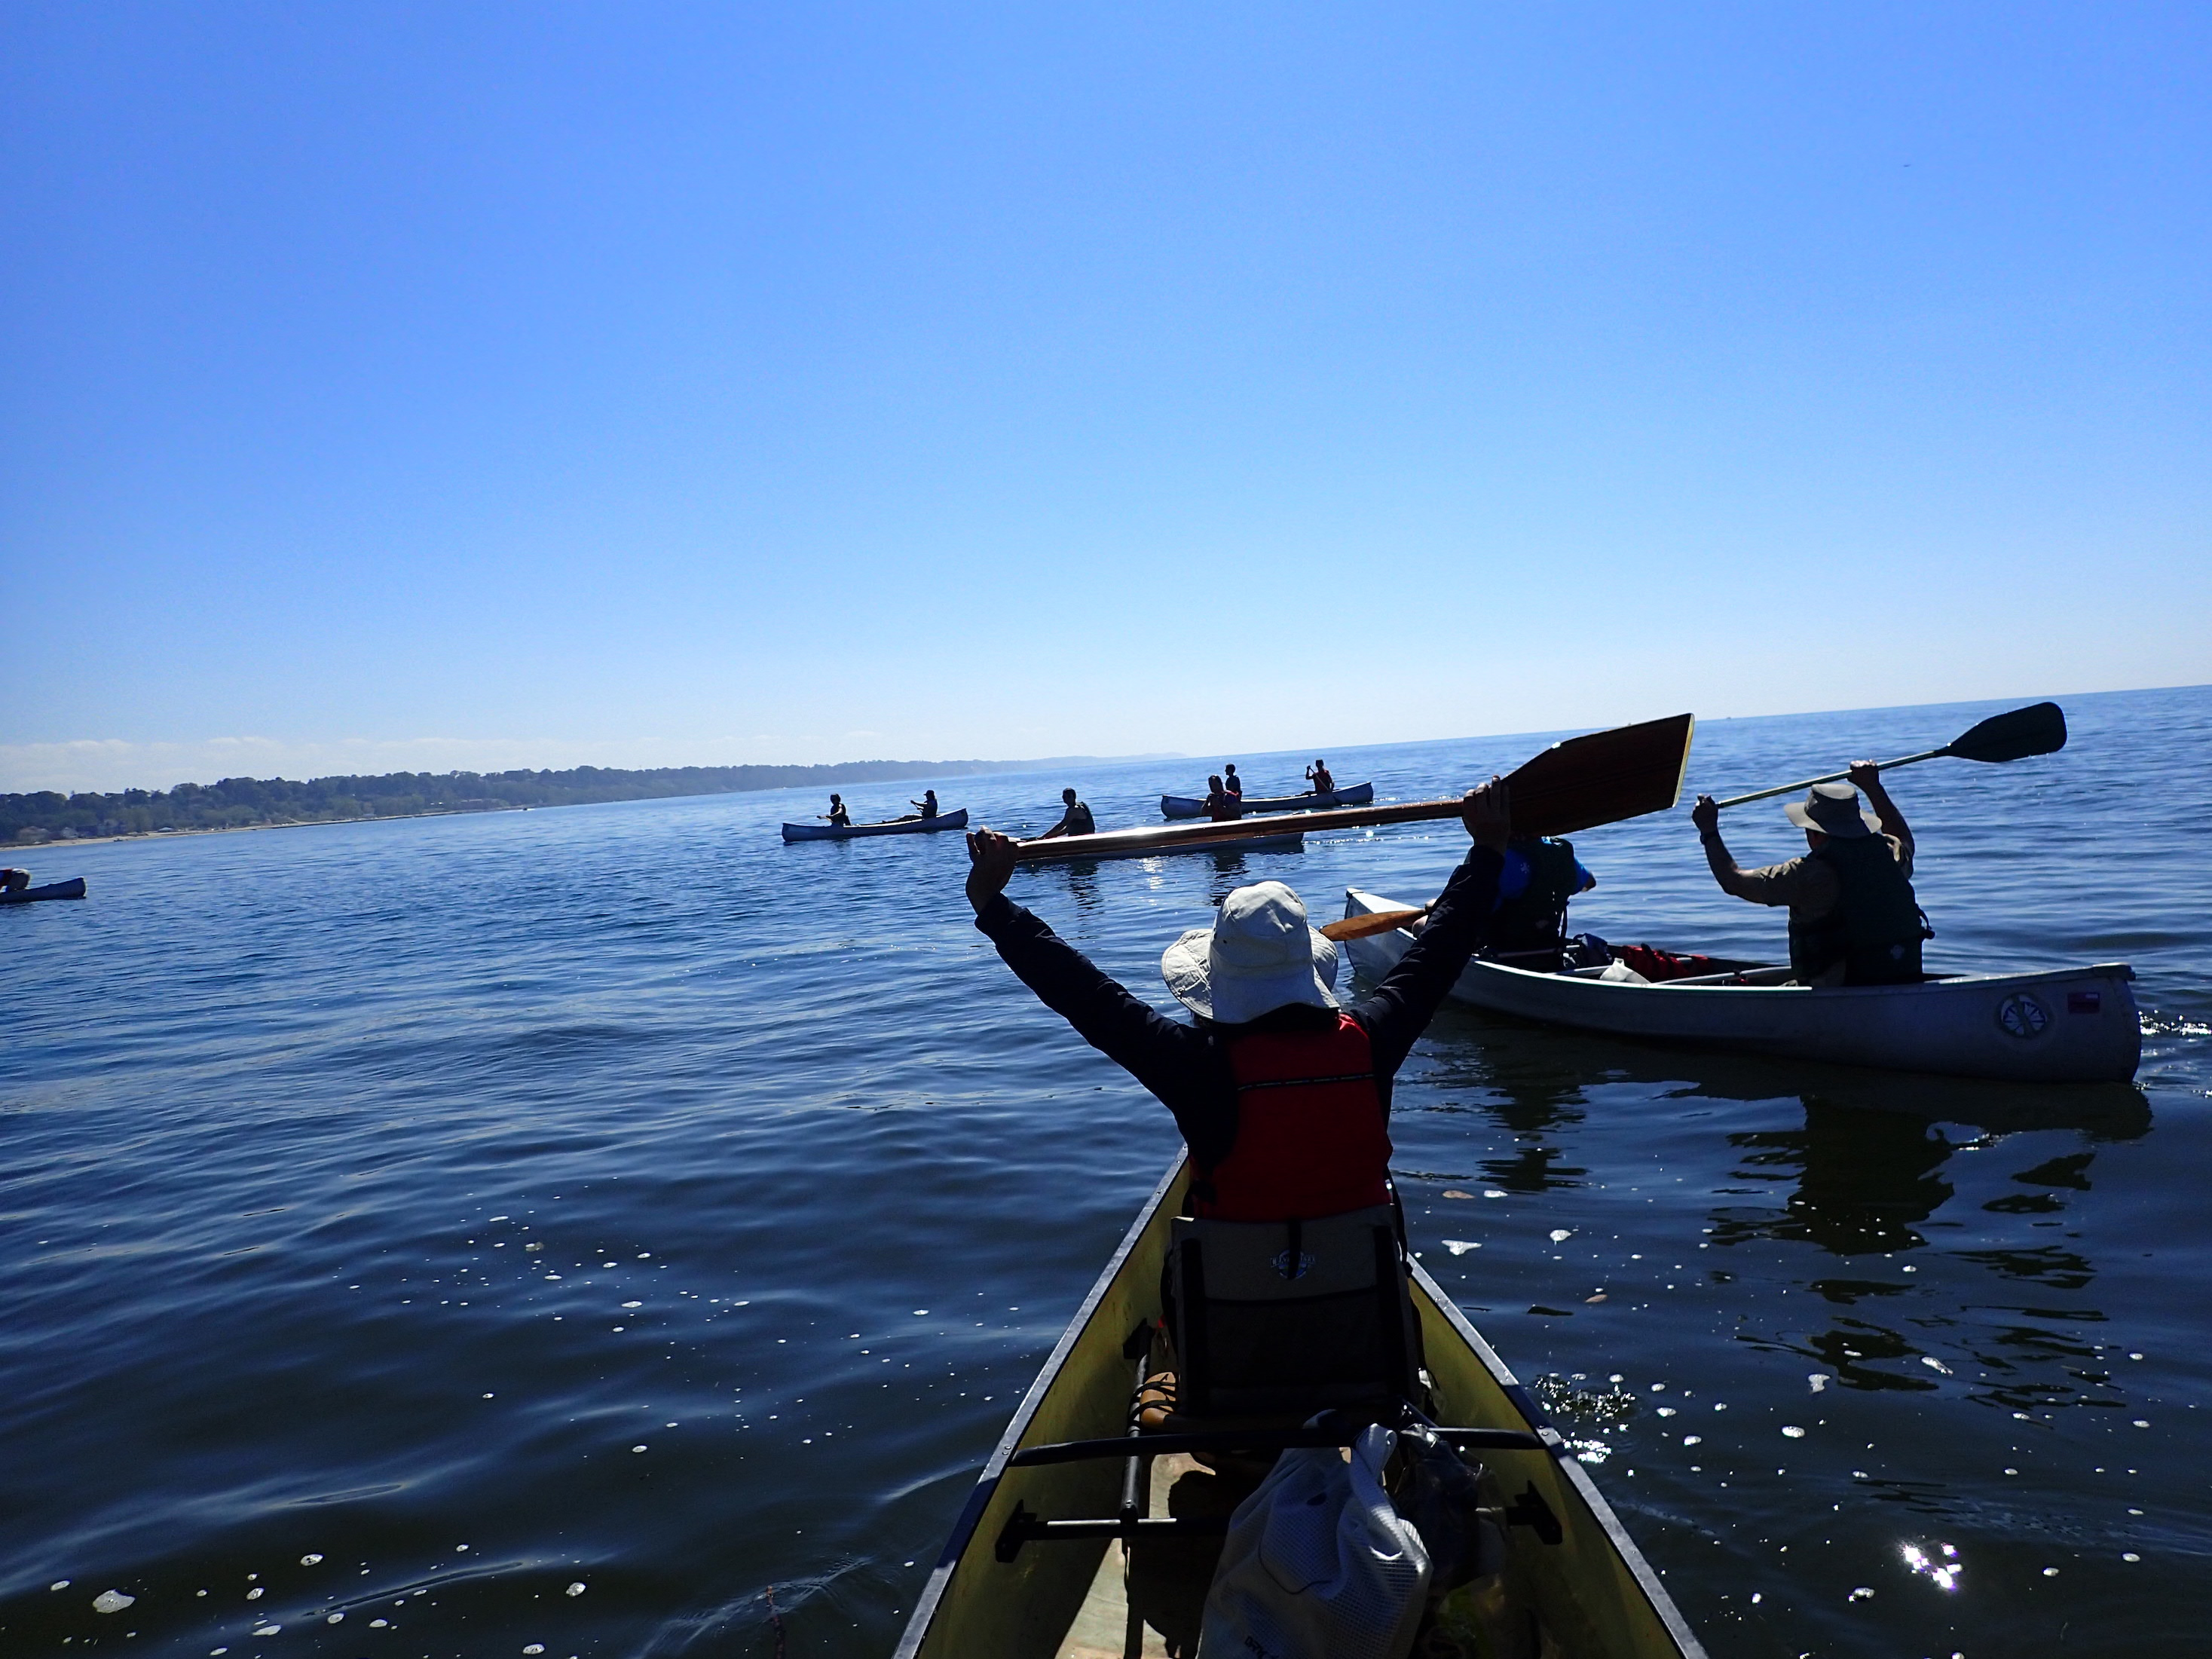 Students canoeing on a lake